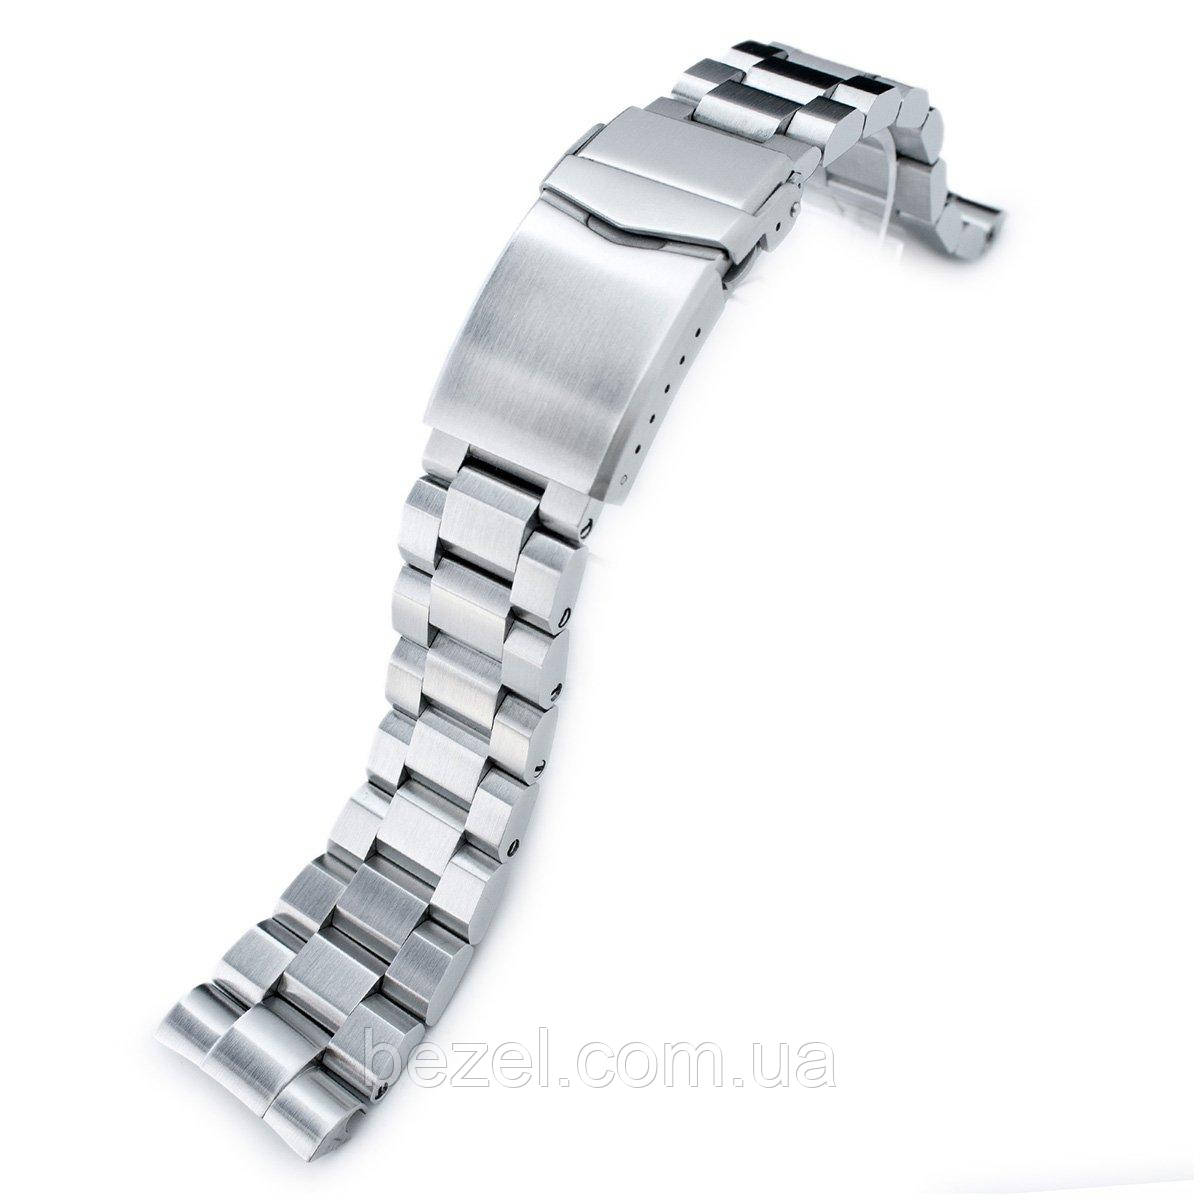 22mm Hexad Oyster 316L Stainless Steel Watch Band for Seiko New Turtles SRP777 & PADI SRPA21, V-Clasp Button Double Lock Brushed